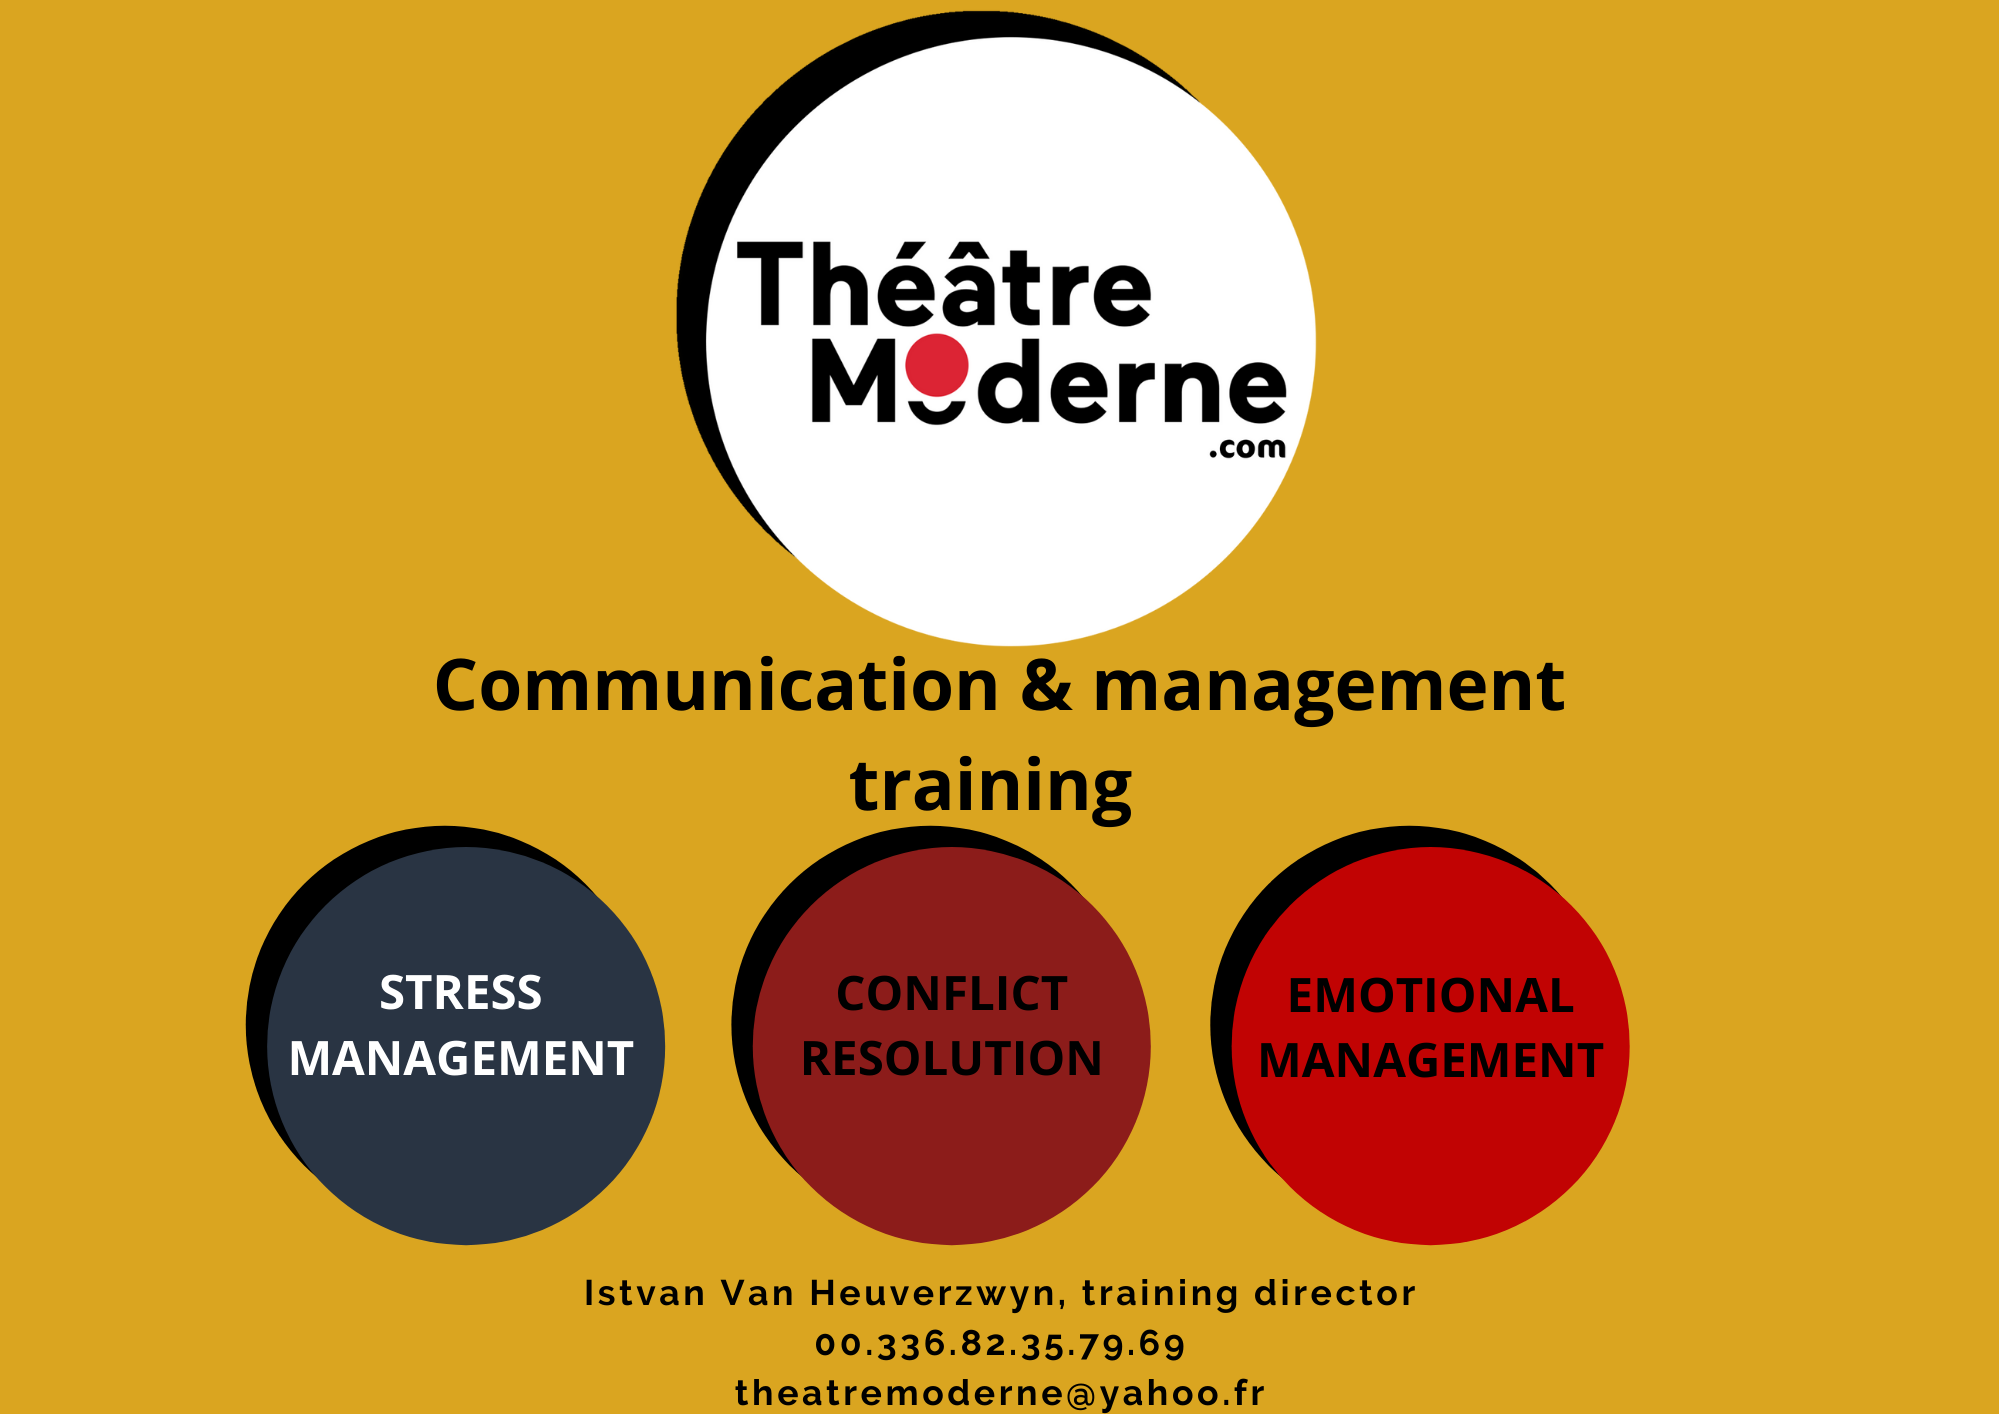 2 - Registration, quote, communication and management training